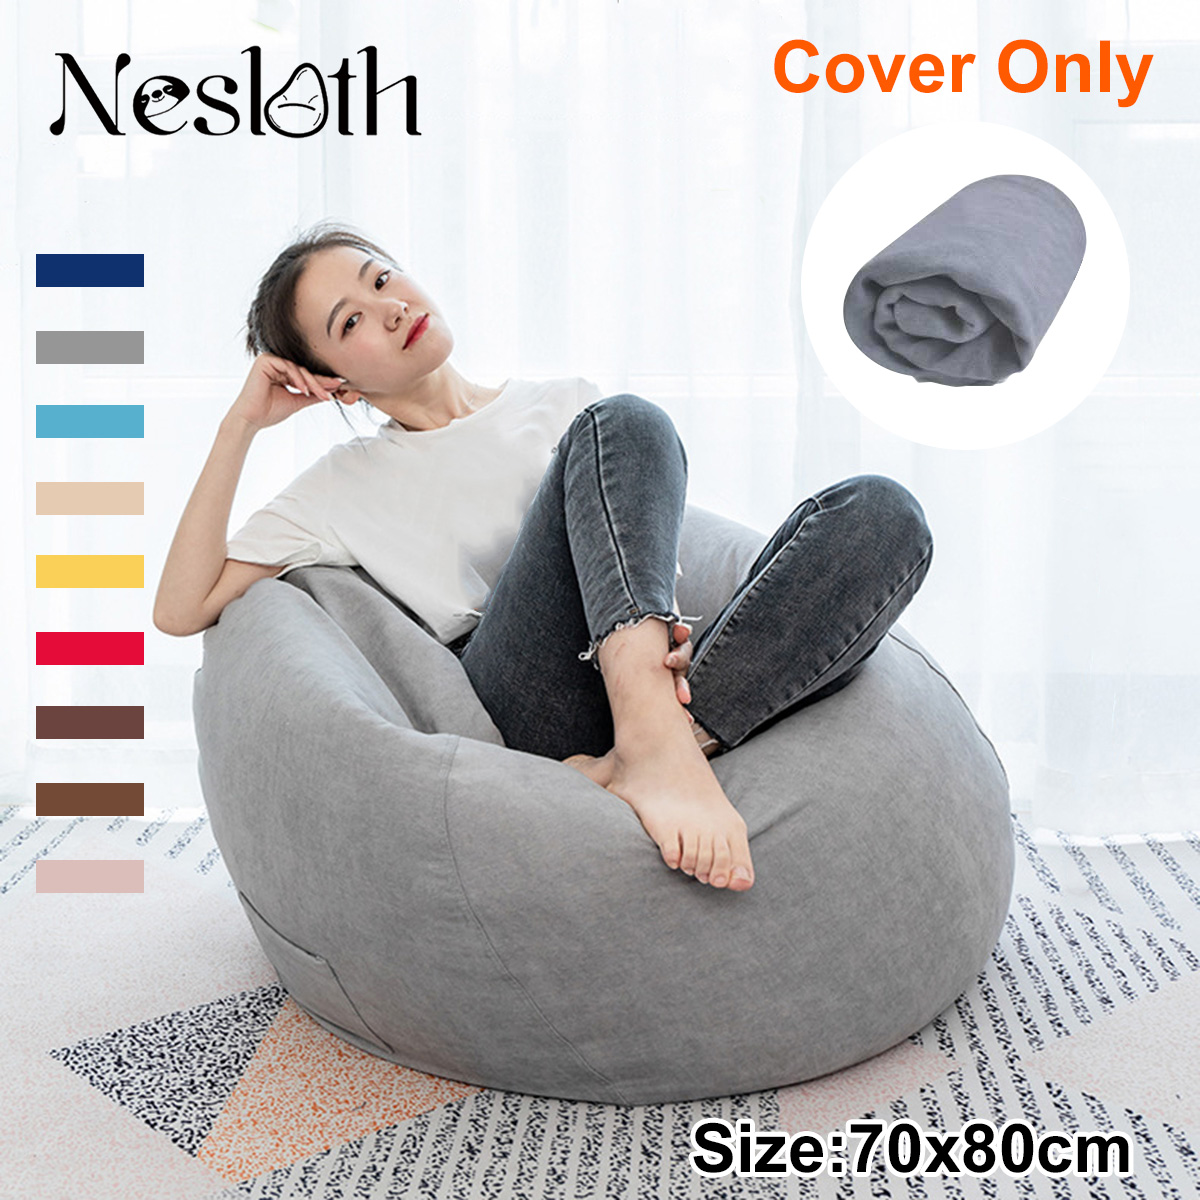 Nesloth Lazy BeanBag Sofas Cover+Inner Liner Chairs without Filler  Lounger Seat Bean Bag Pouf Puff Couch Tatami Living Room